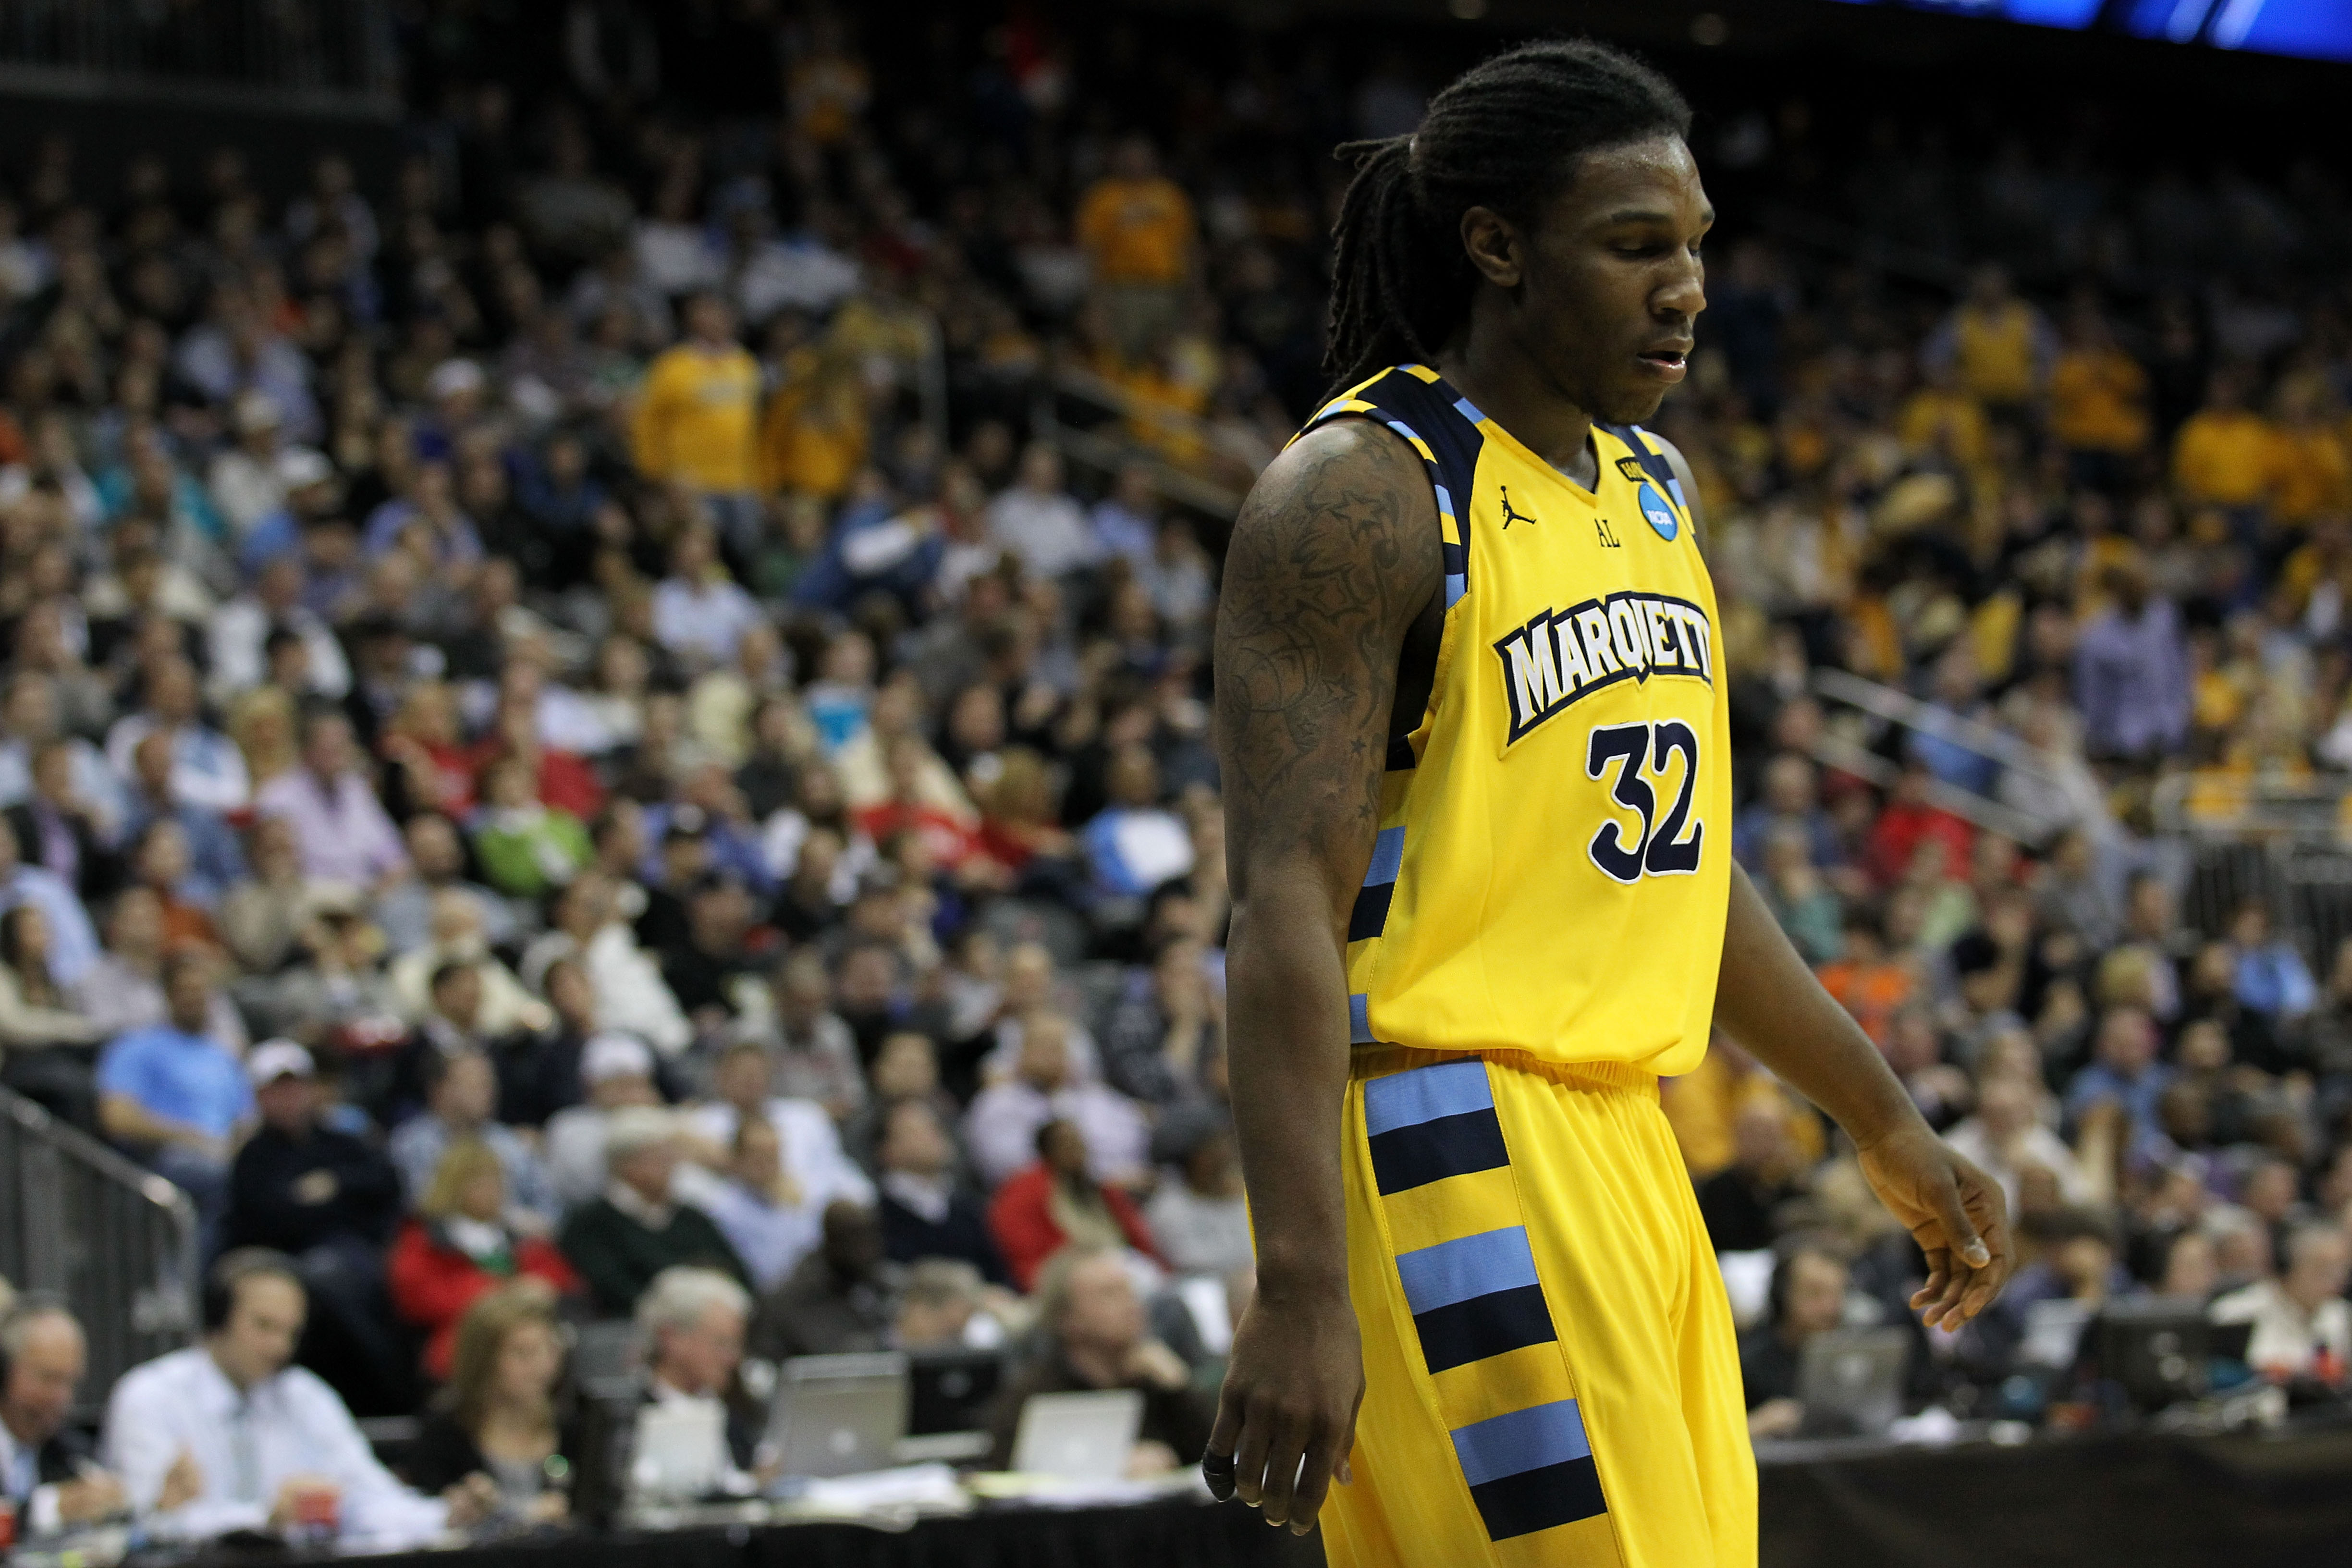 NEWARK, NJ - MARCH 25:  Jae Crowder #32 of the Marquette Golden Eagles reacts after a play against the North Carolina Tar Heels during the east regional semifinal of the 2011 NCAA Men's Basketball Tournament at the Prudential Center on March 25, 2011 in N